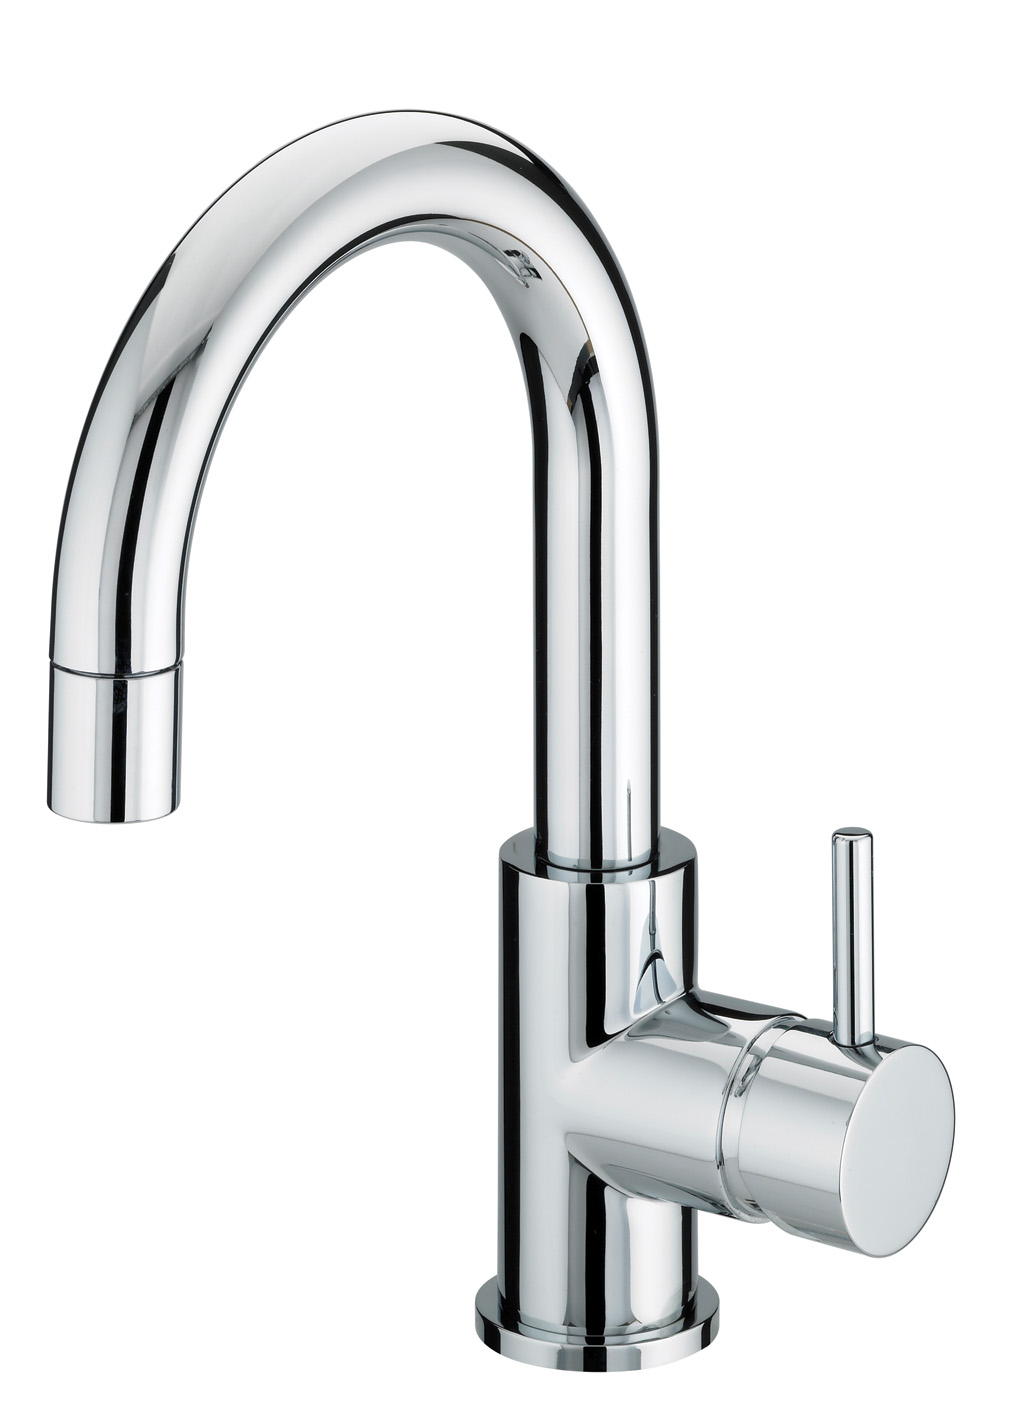 BRISTAN PRISM SIDE ACTION BASIN MIXER TAP CHROME WITH POP-UP WASTE